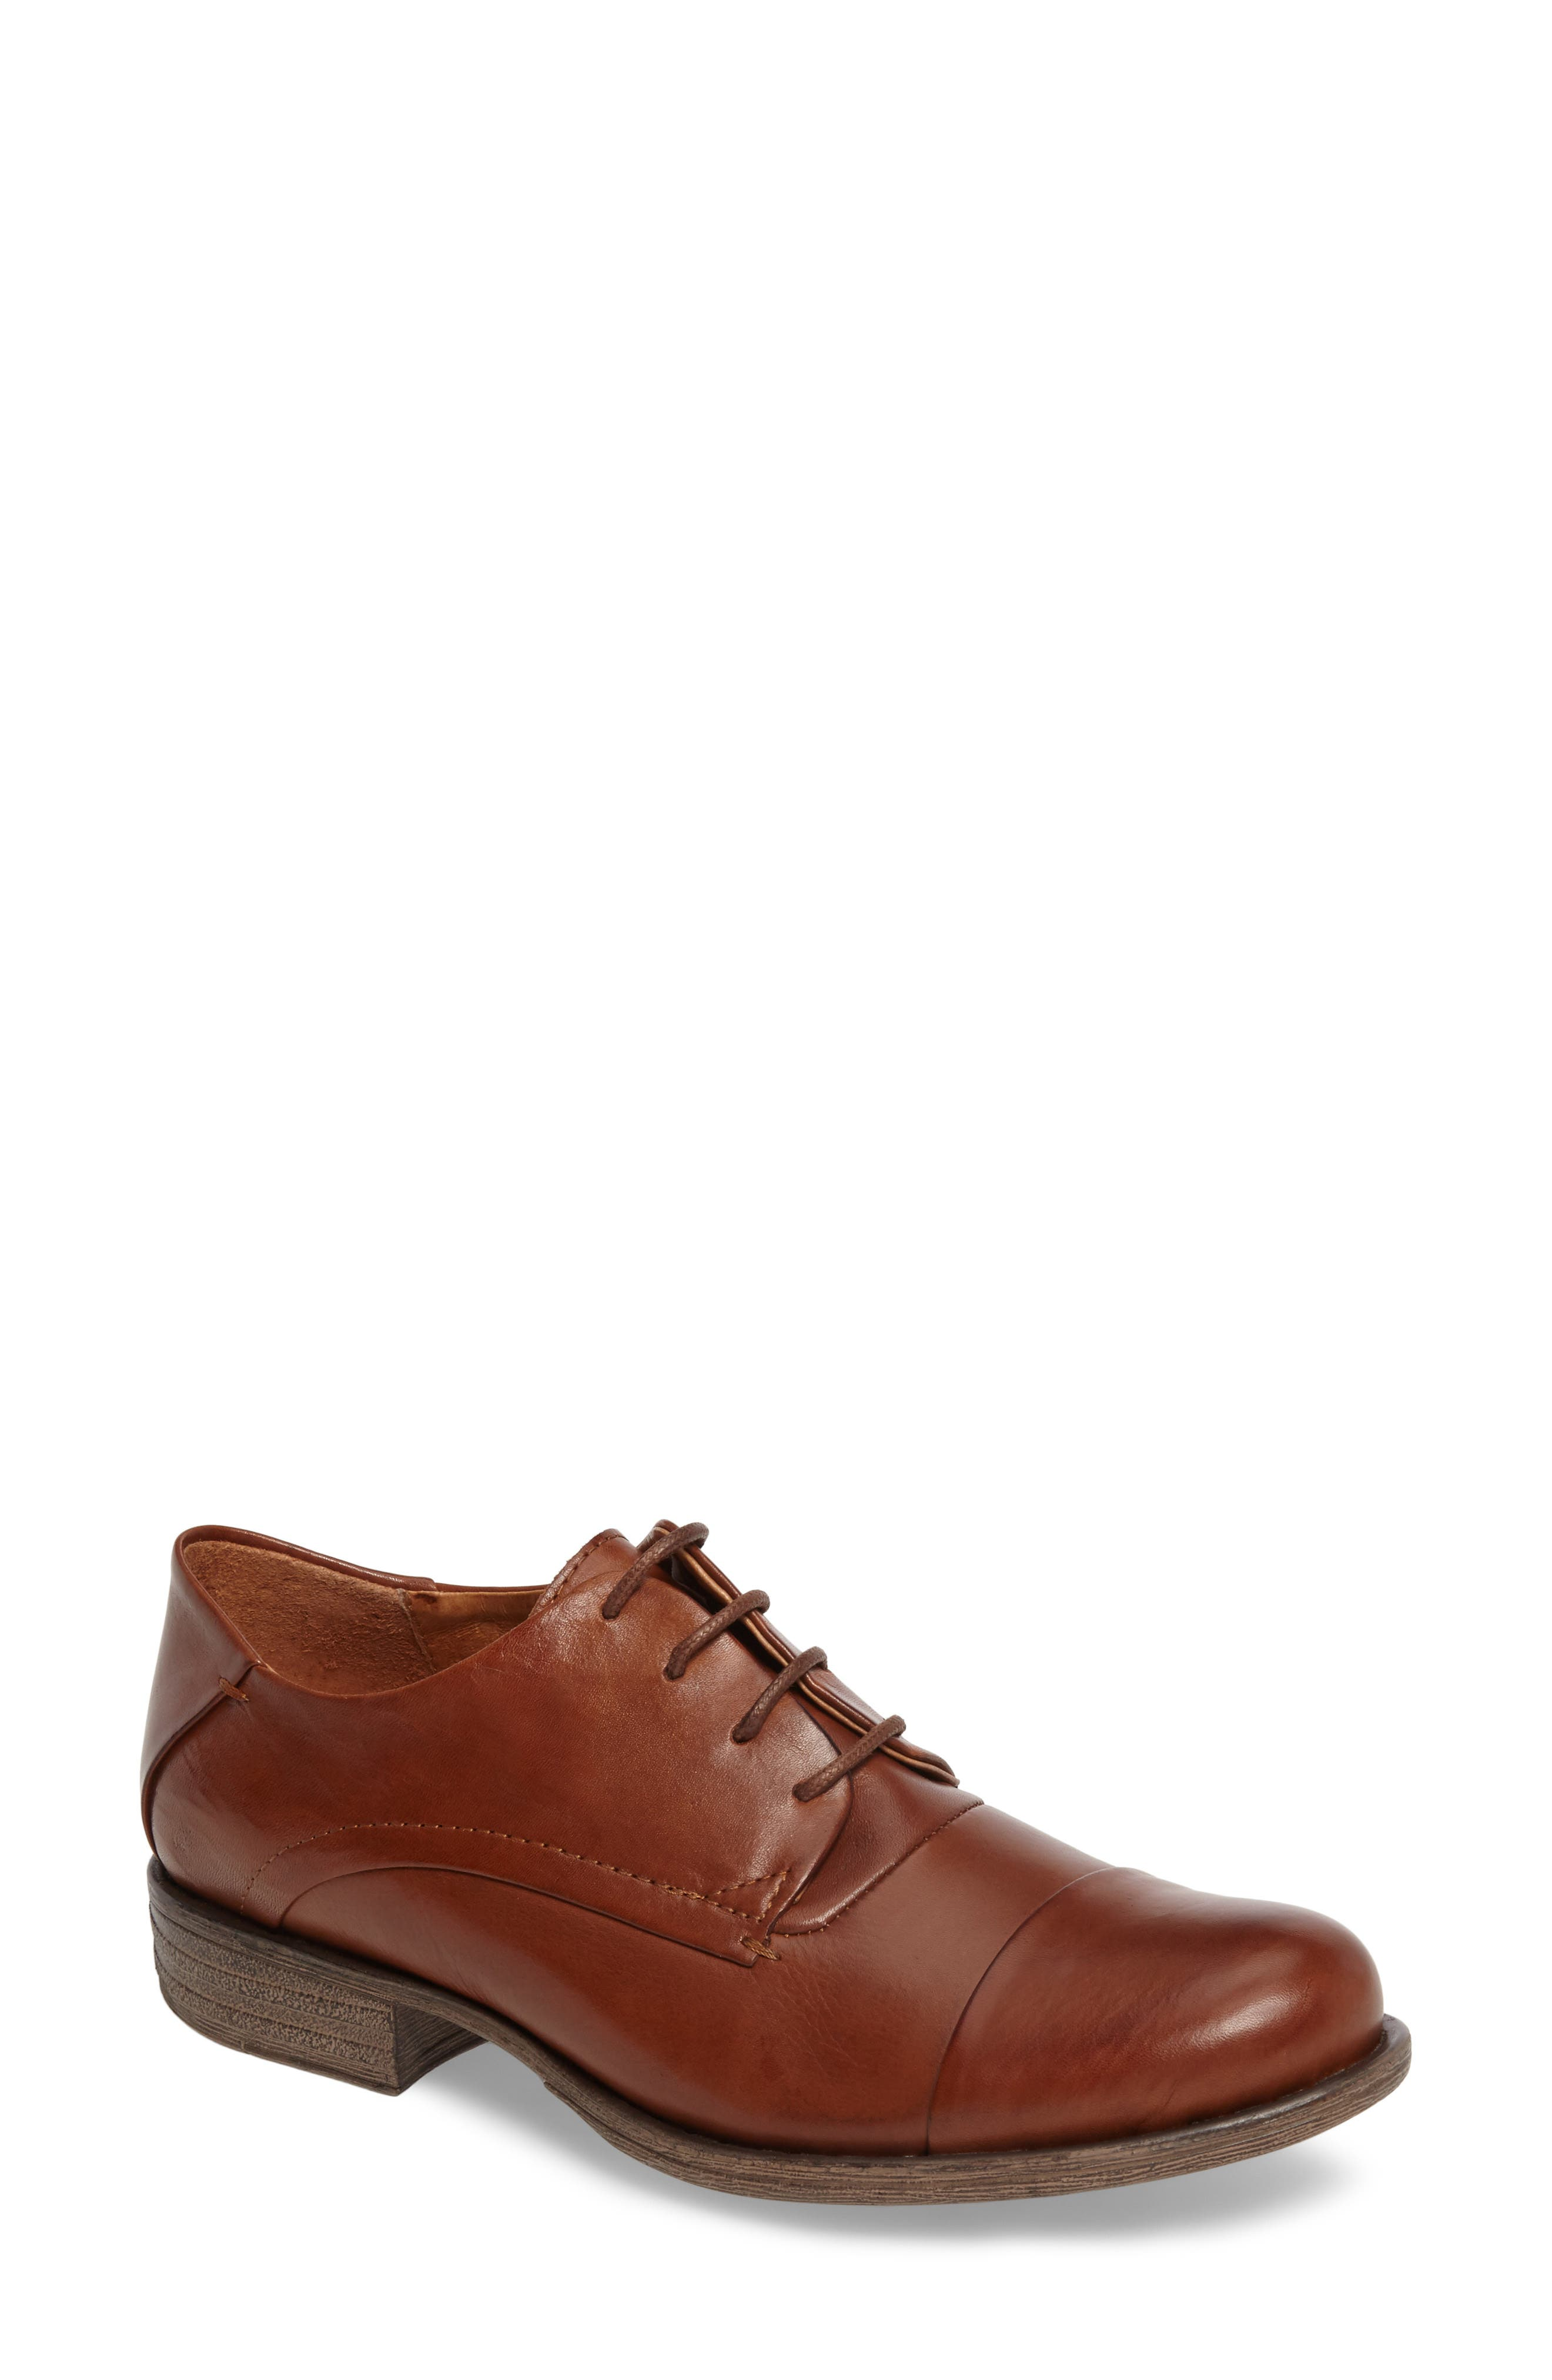 Letty Oxford Flat,                         Main,                         color, Brandy